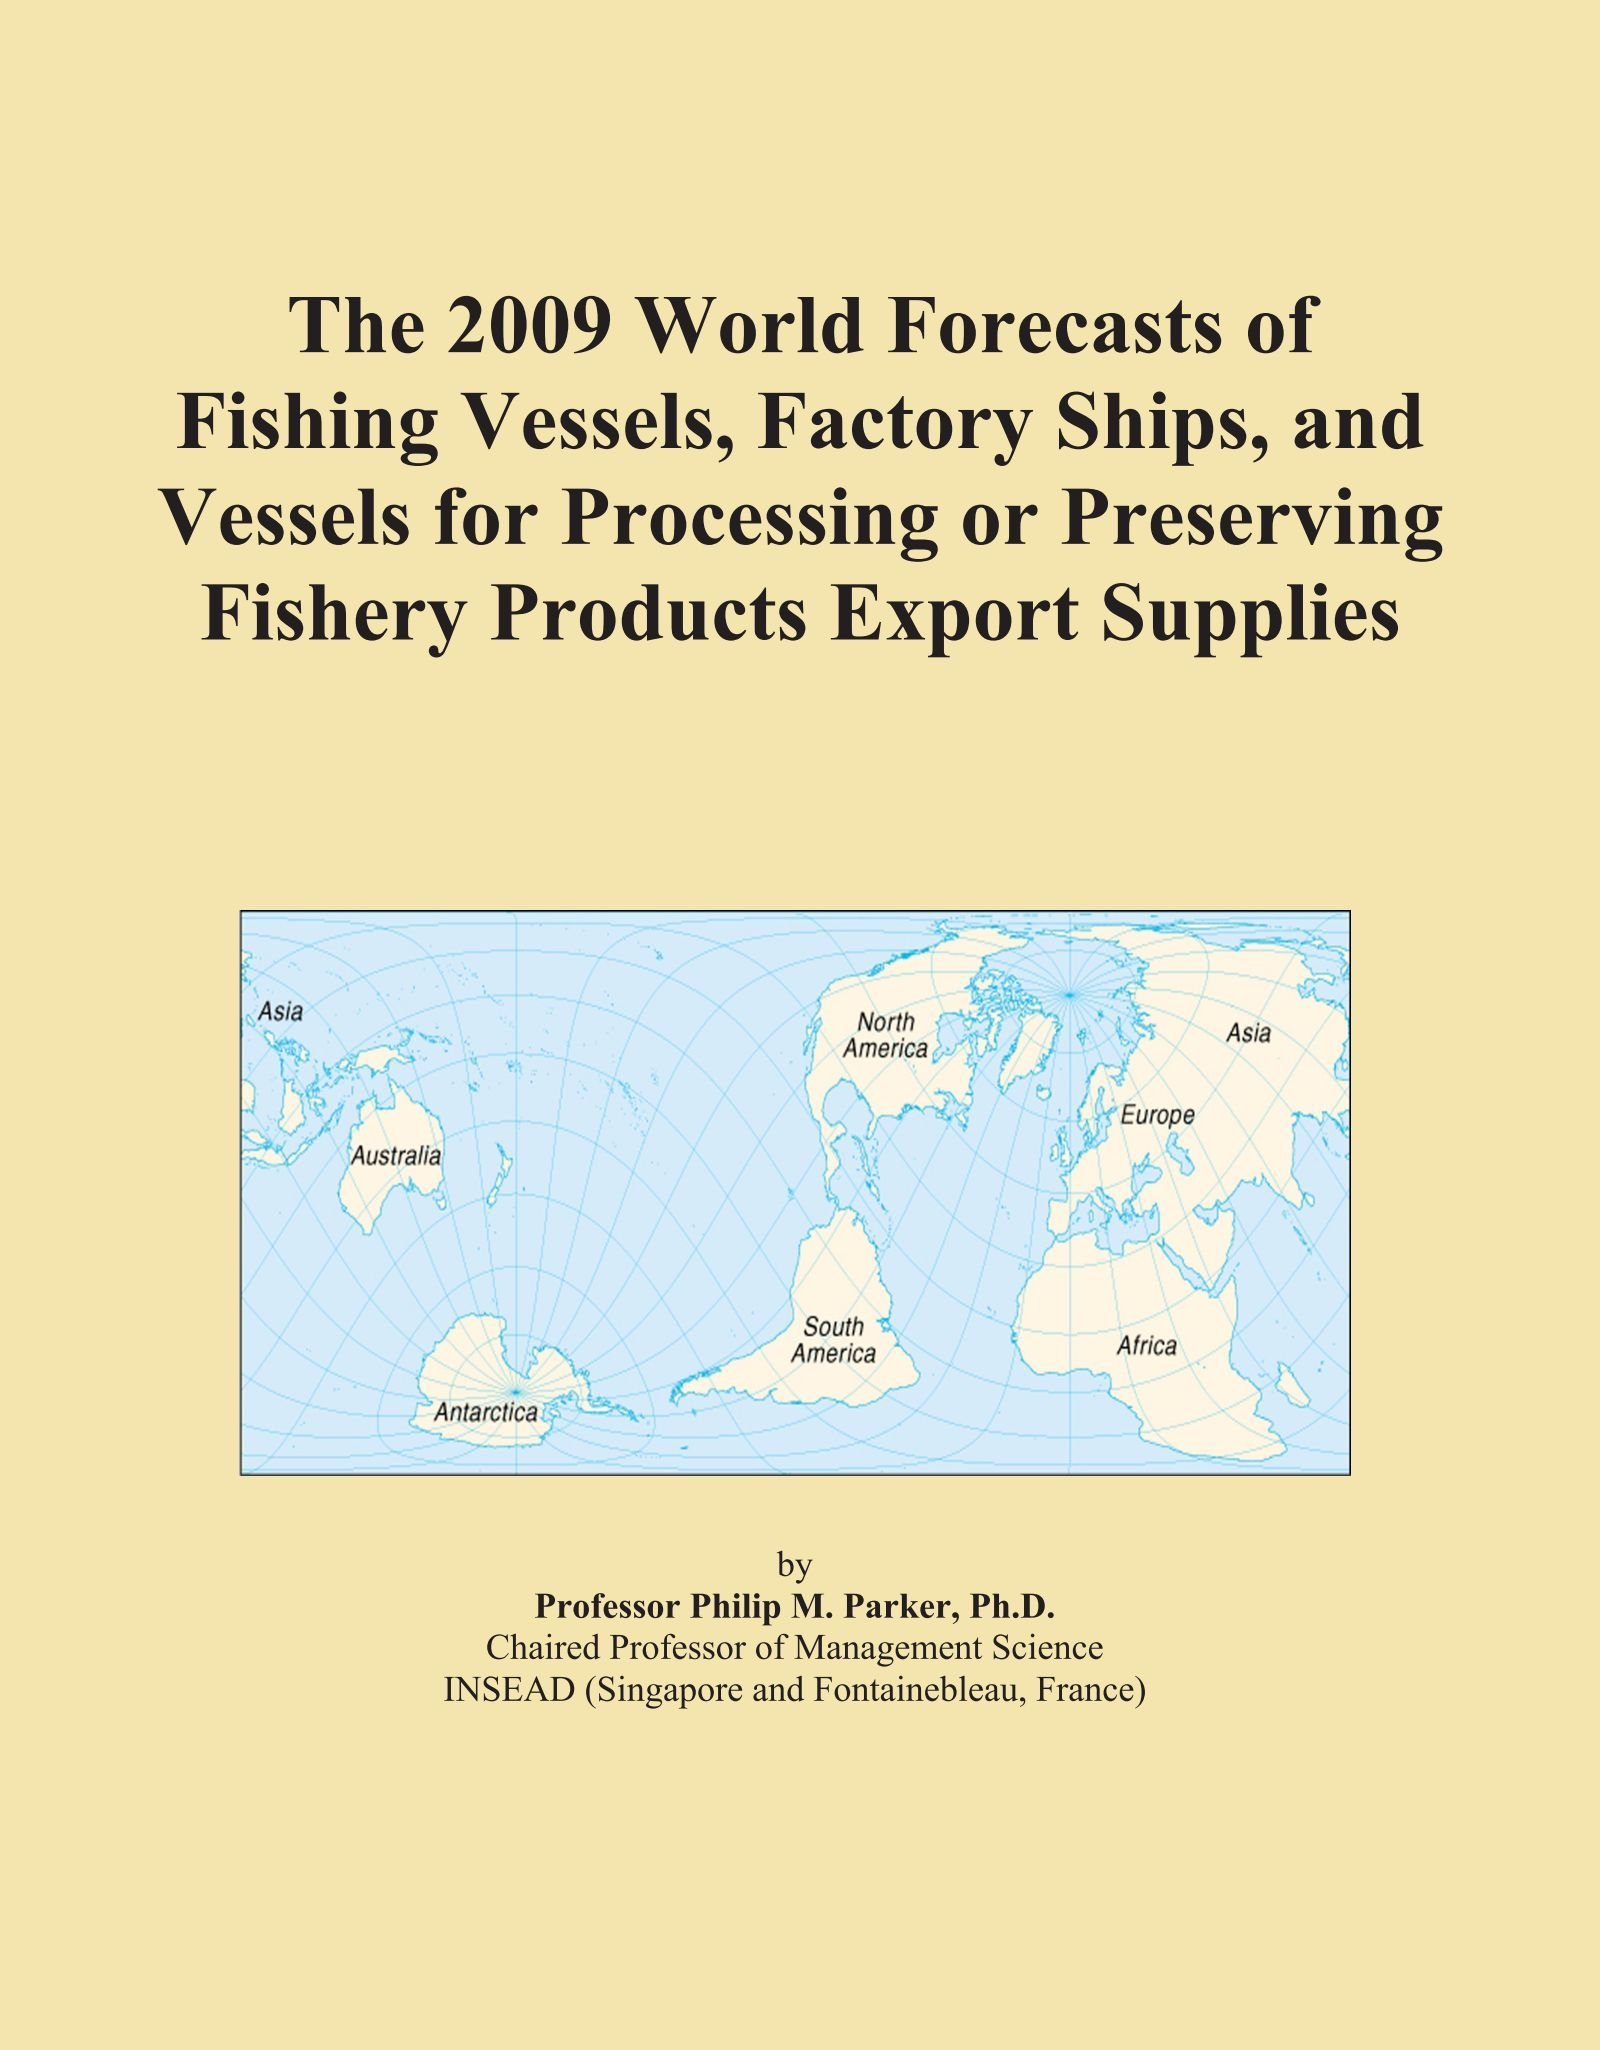 The 2009 World Forecasts of Fishing Vessels, Factory Ships, and Vessels for Processing or Preserving Fishery Products Export Supplies by ICON Group International, Inc.